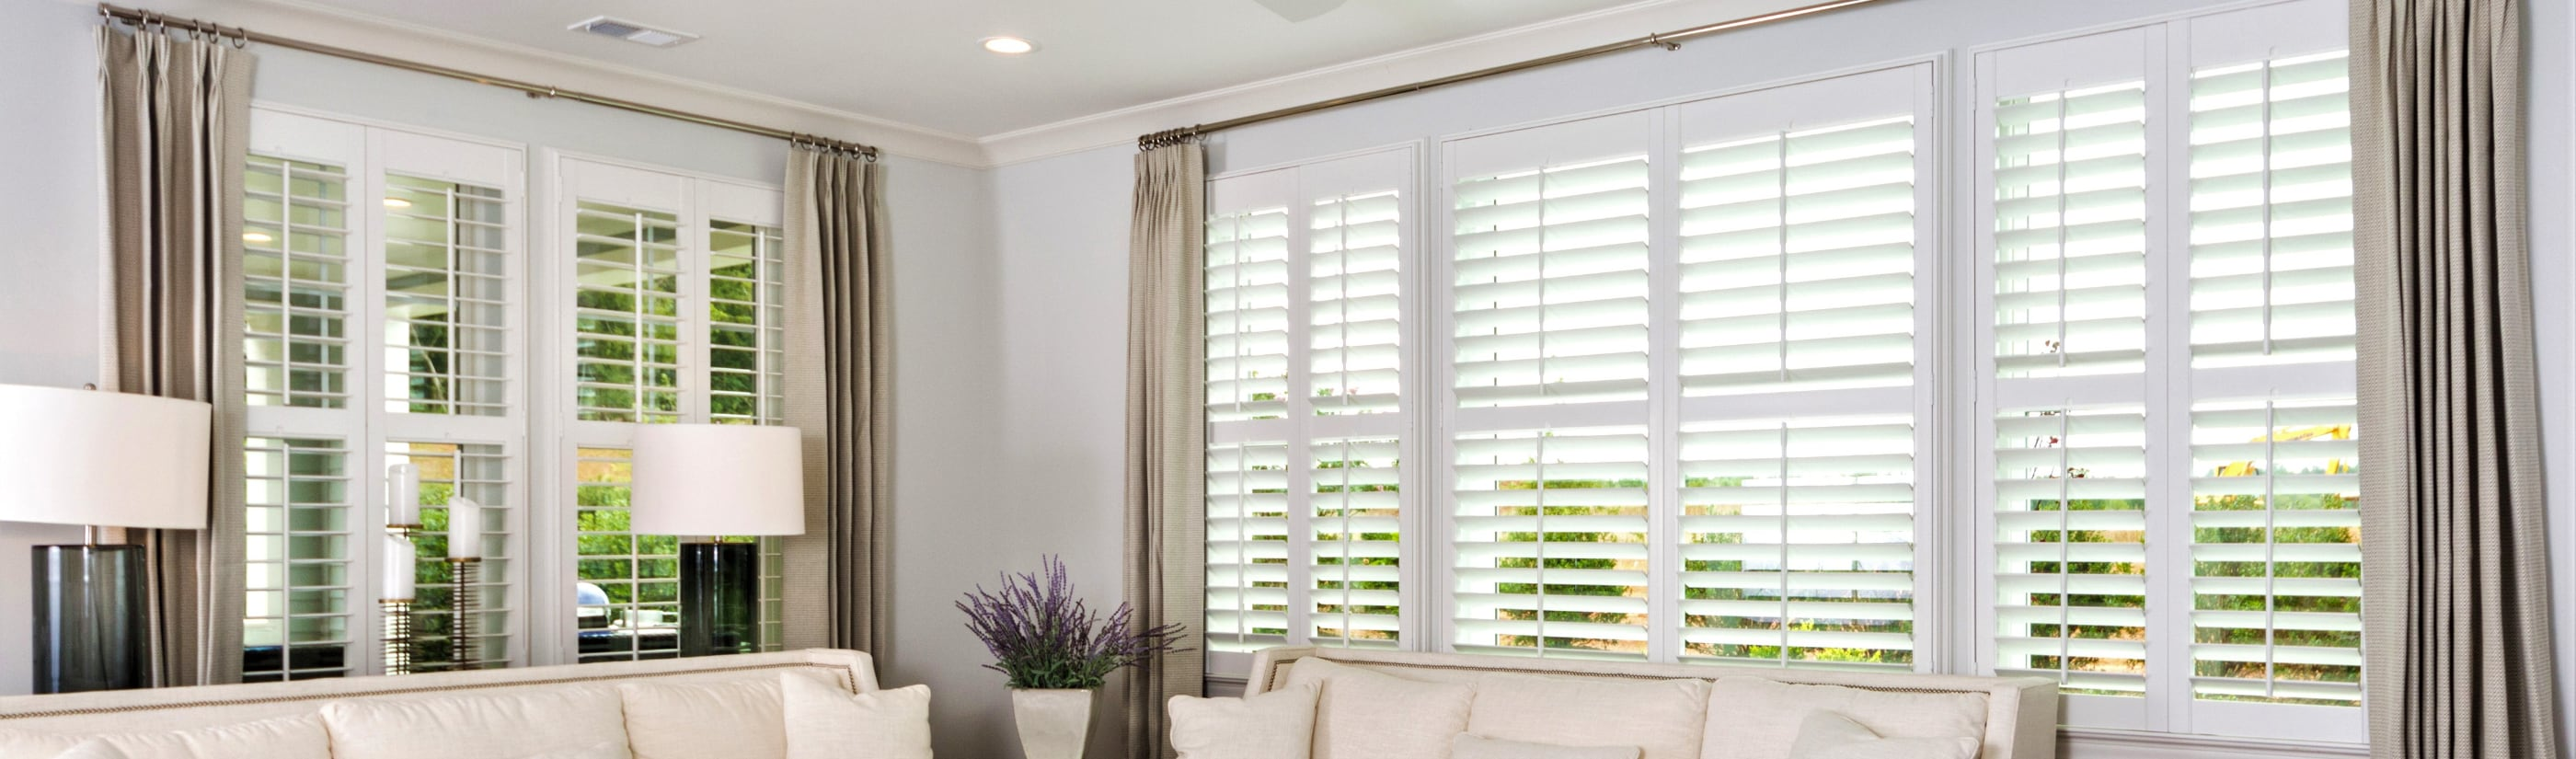 Polywood Shutters Paints In Philadelphia